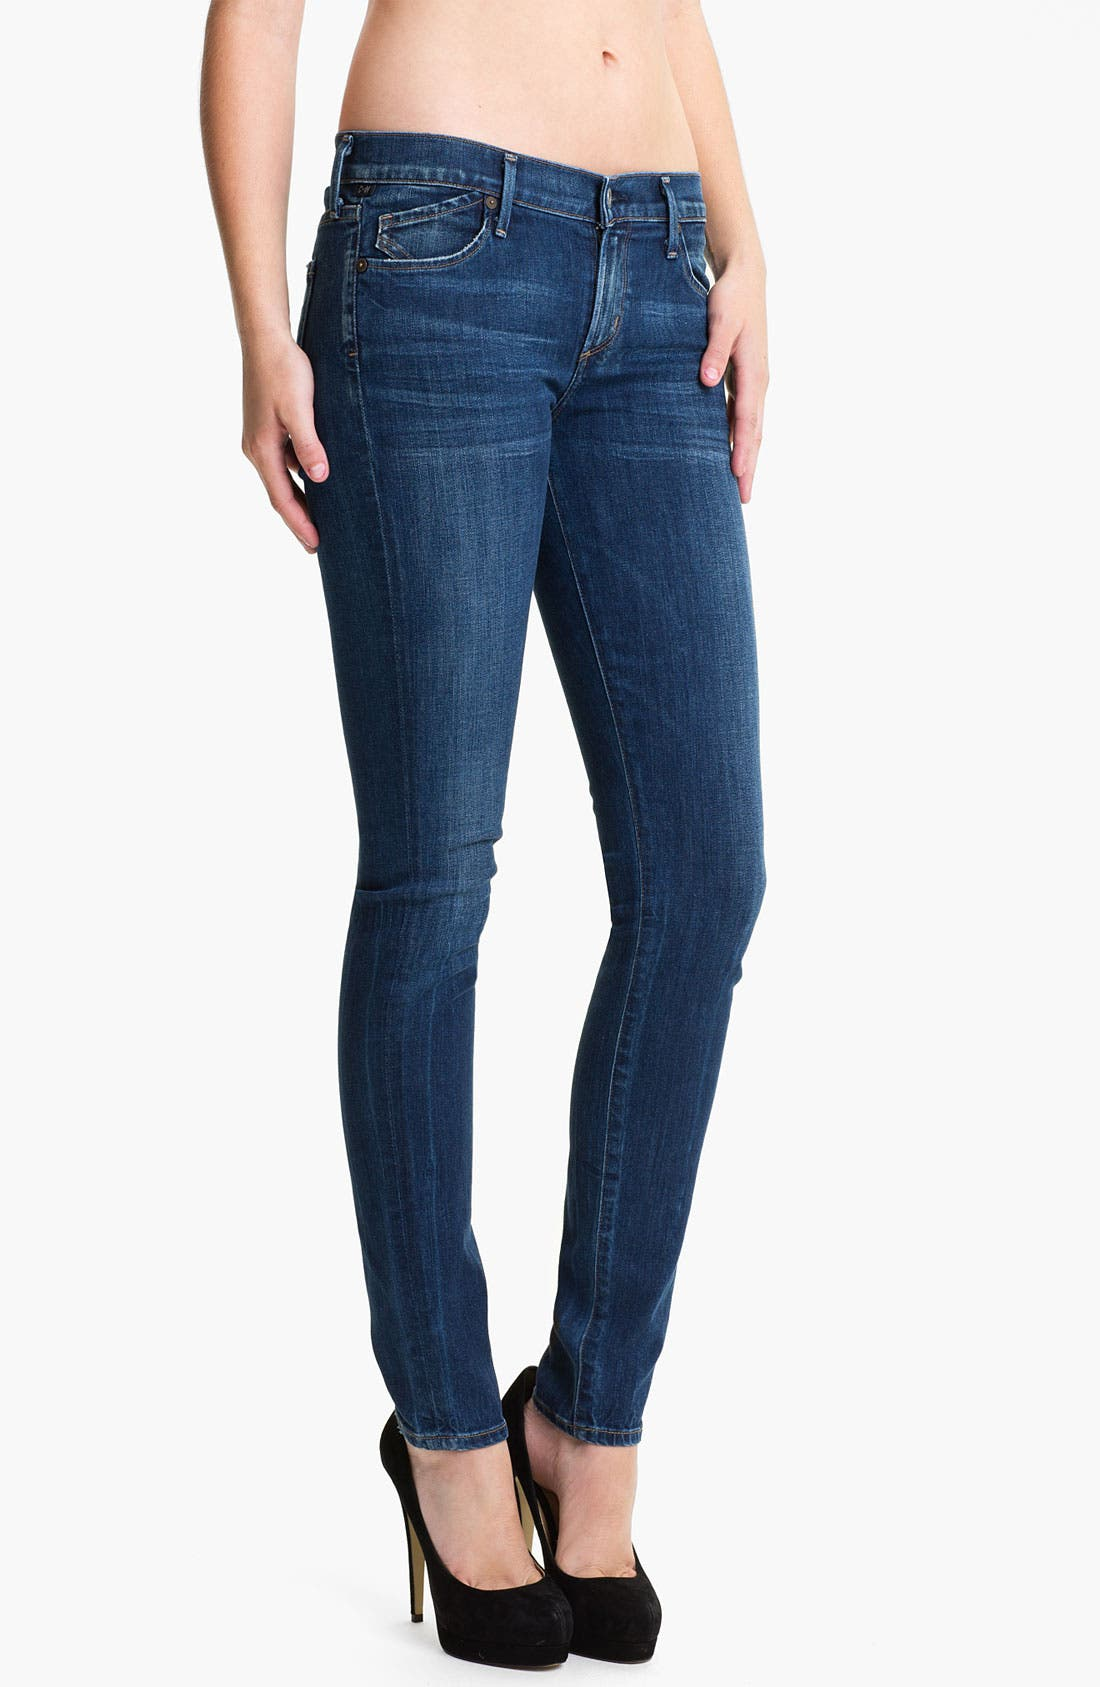 Alternate Image 1 Selected - Citizens of Humanity Stretch Skinny Jeans (Dark Blue)